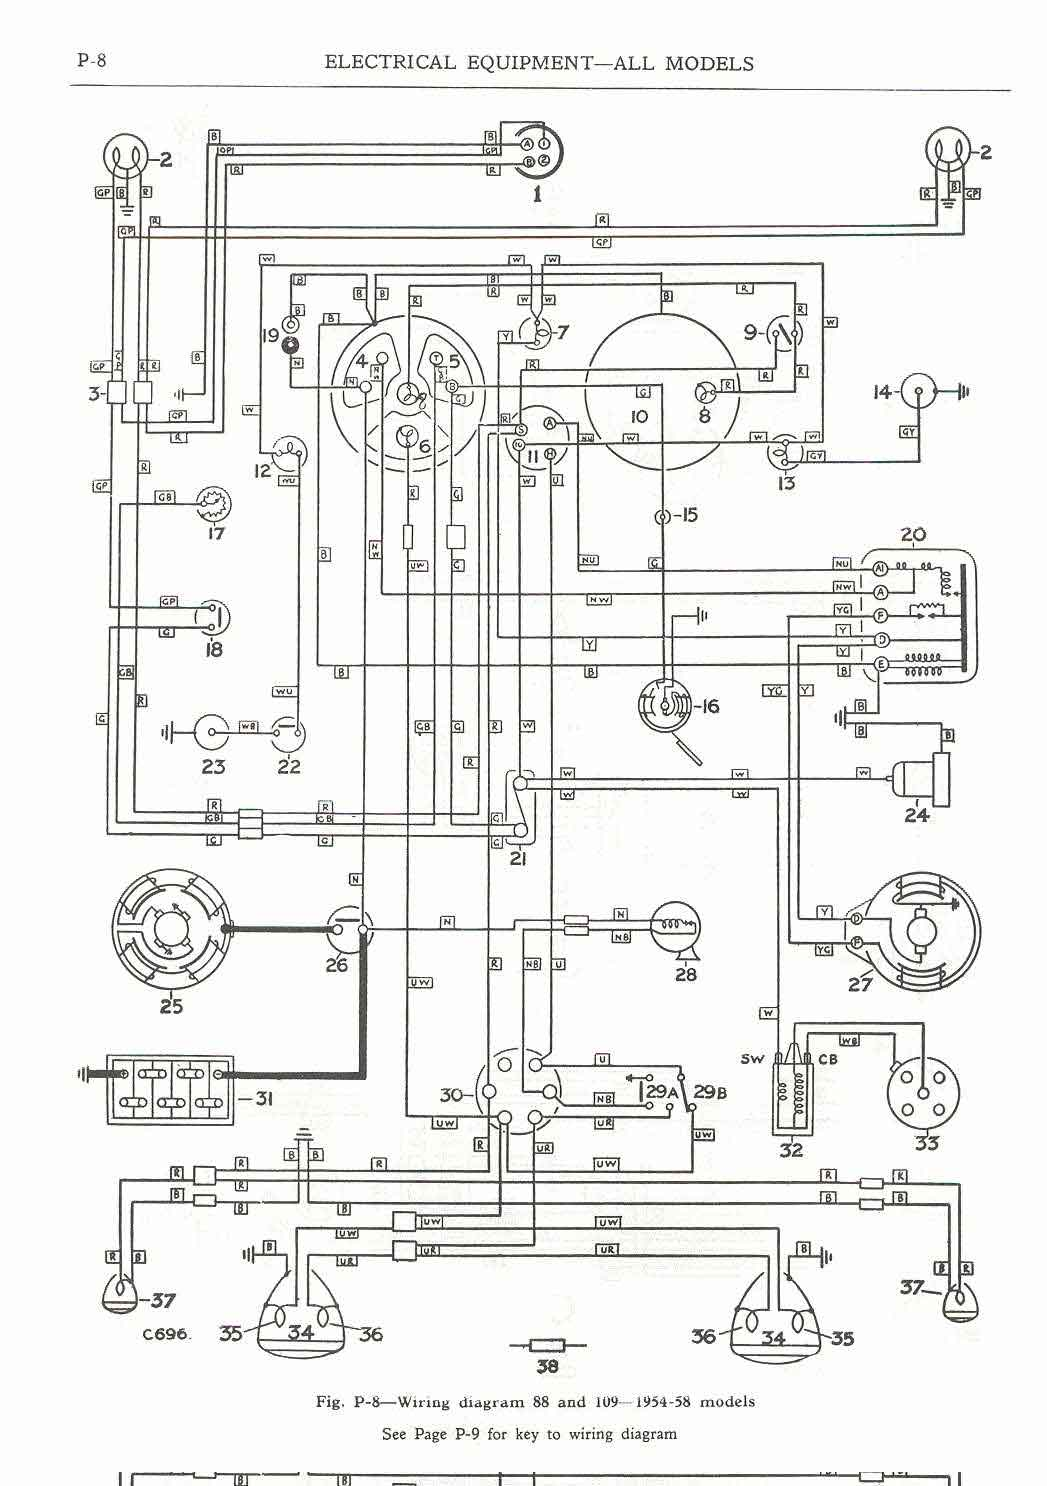 P8 land rover series 2 wiring diagram land rover faq repair,Land Rover Series 3 Dash Wiring Diagram